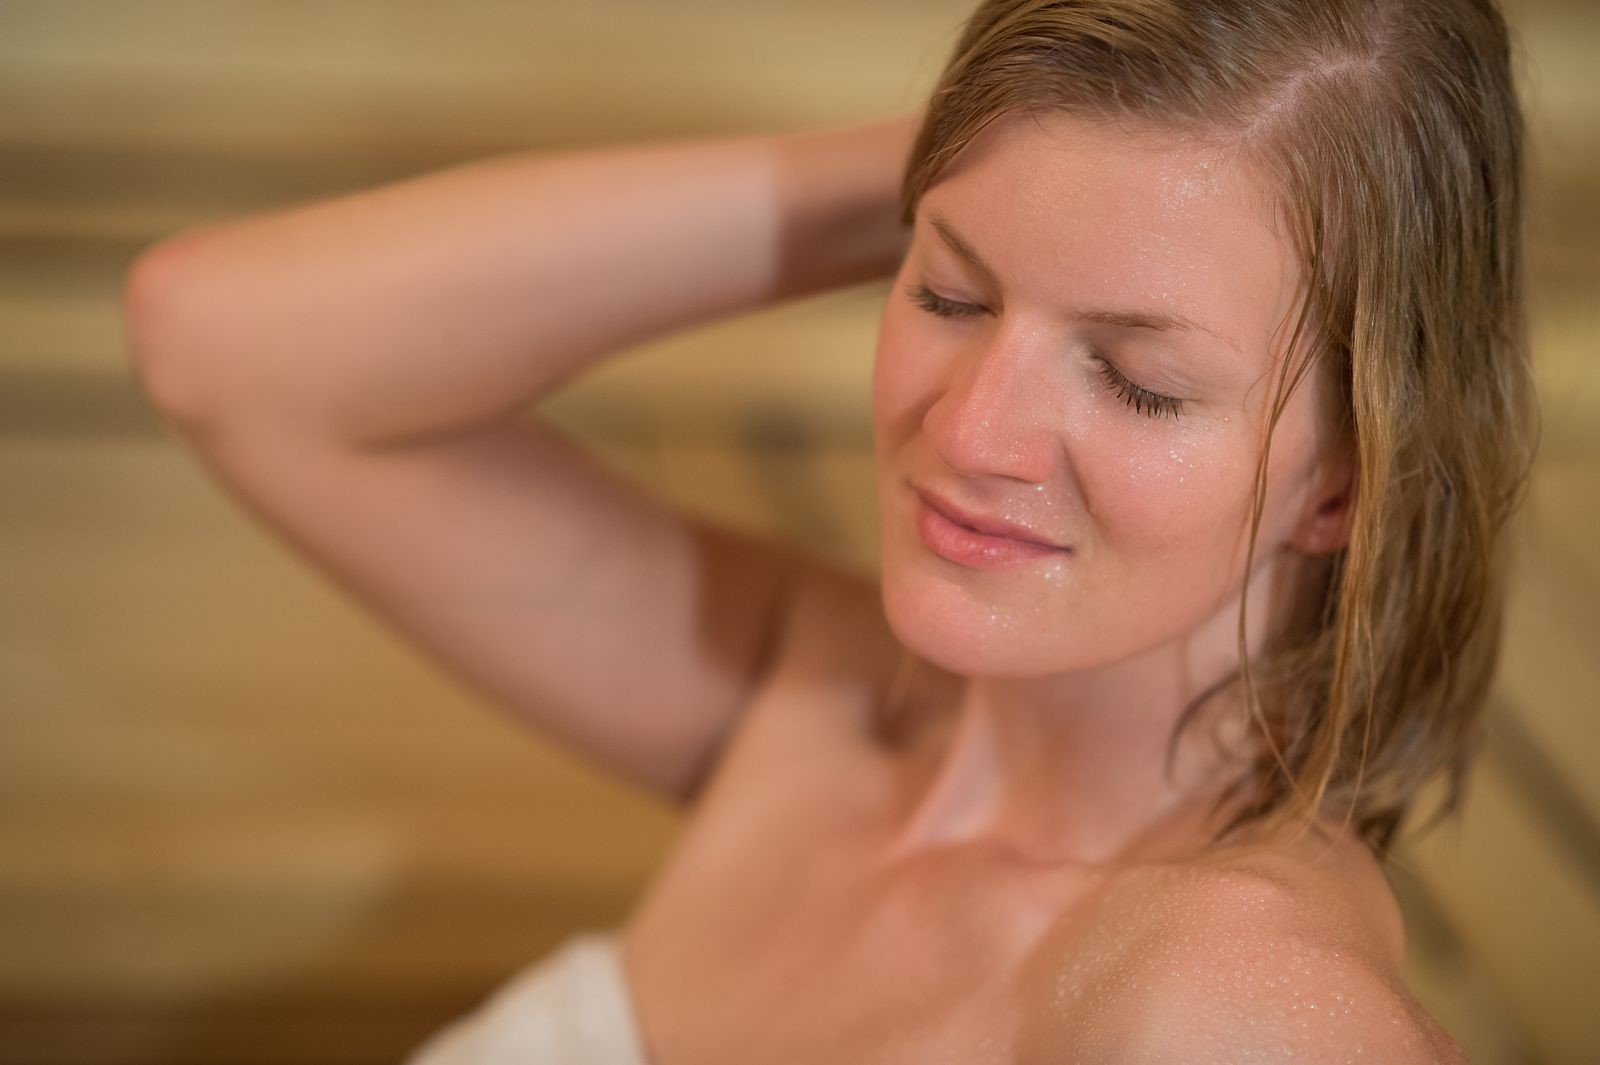 Important Things You Should Know About a Low EMF Far-Infrared Sauna